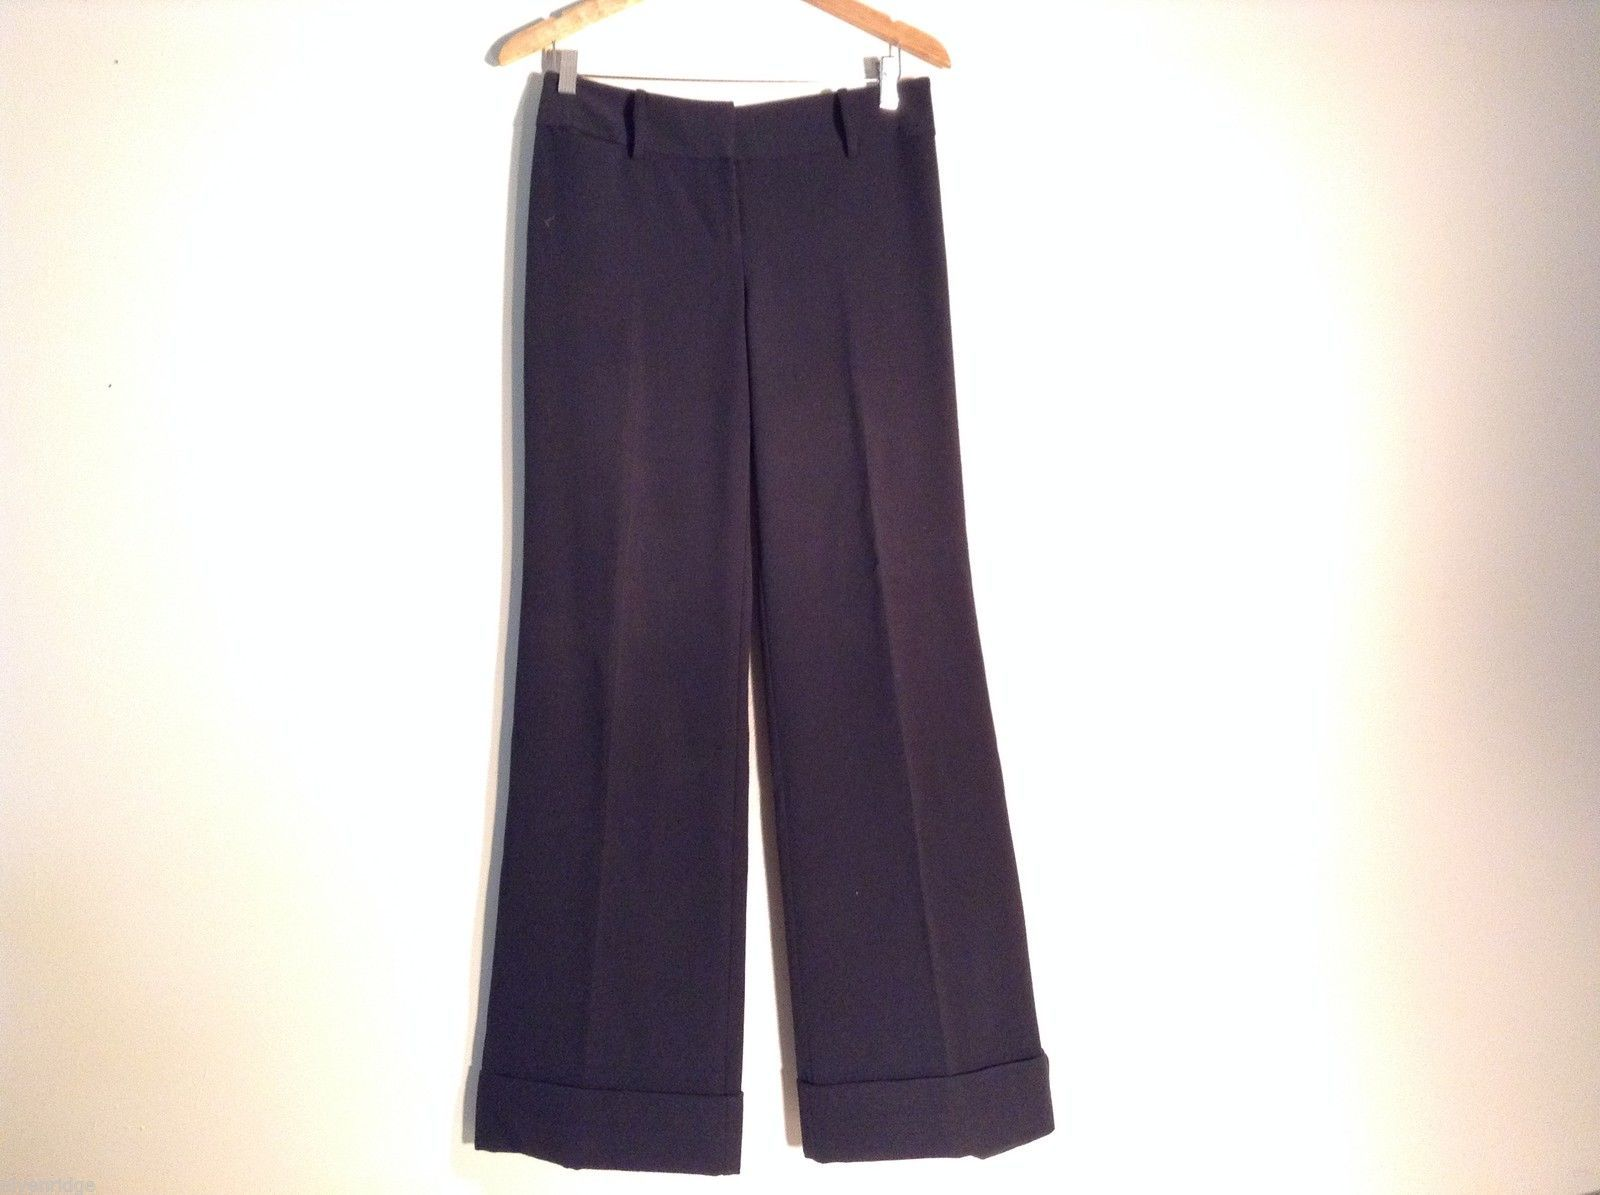 Ann Taylor Loft Womens Size 4 Black Dress Pants Stretchy